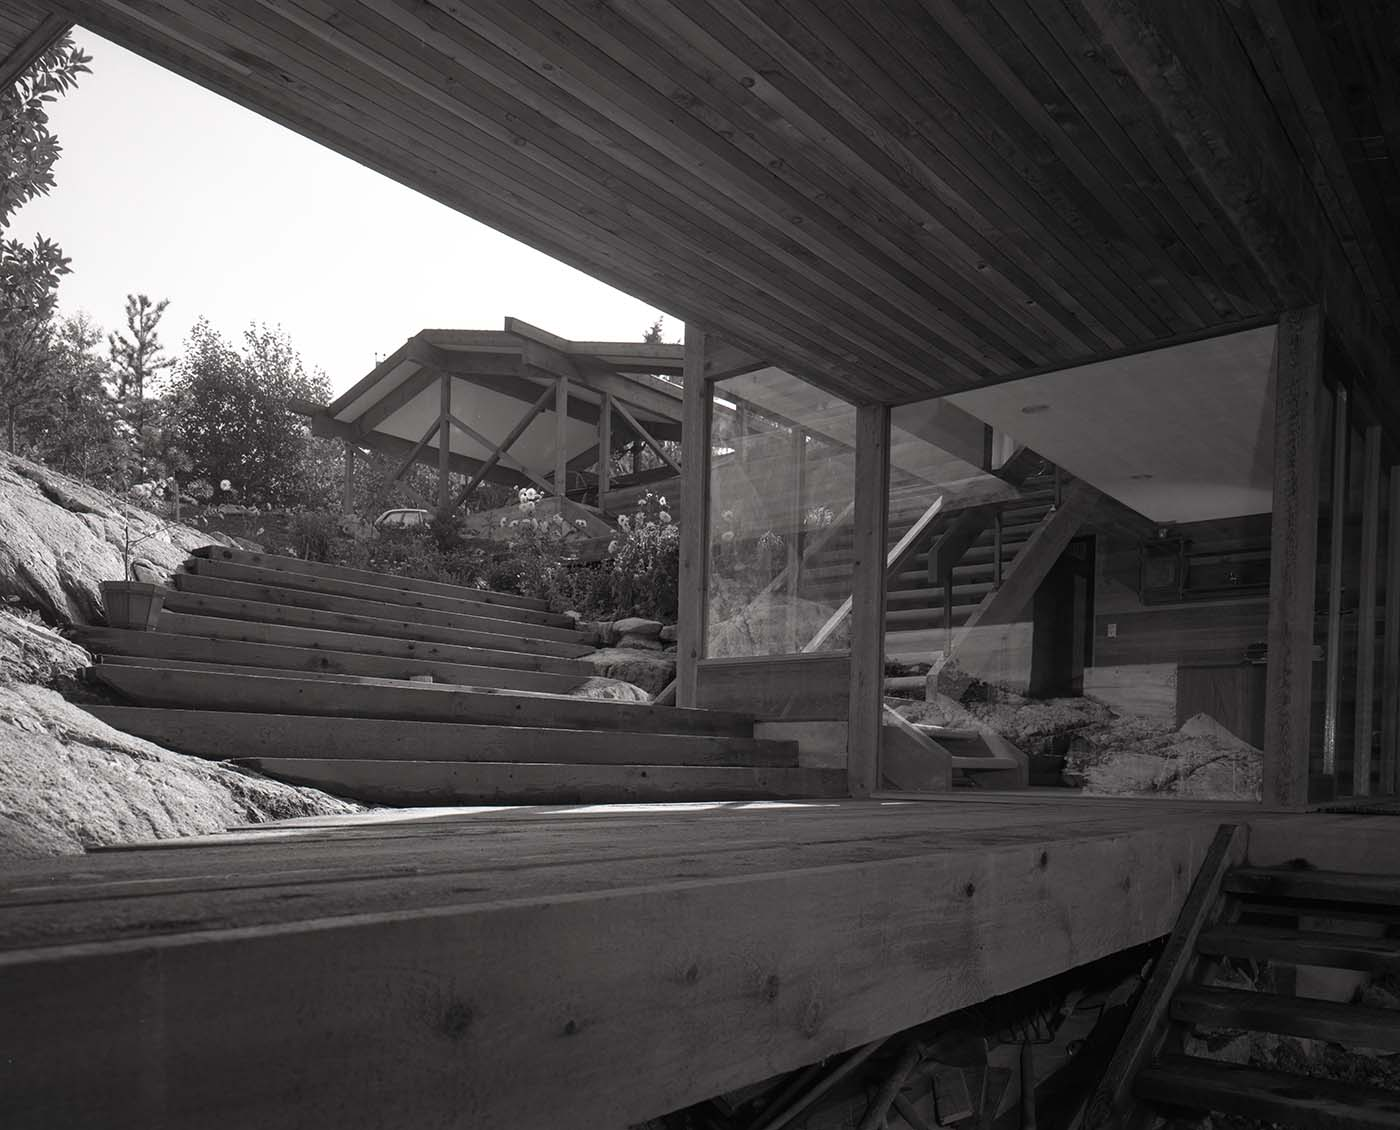 Exterior stairs of the Anton Residence (Erickson and Massey), Photo by Fred Schiffer, 1967.